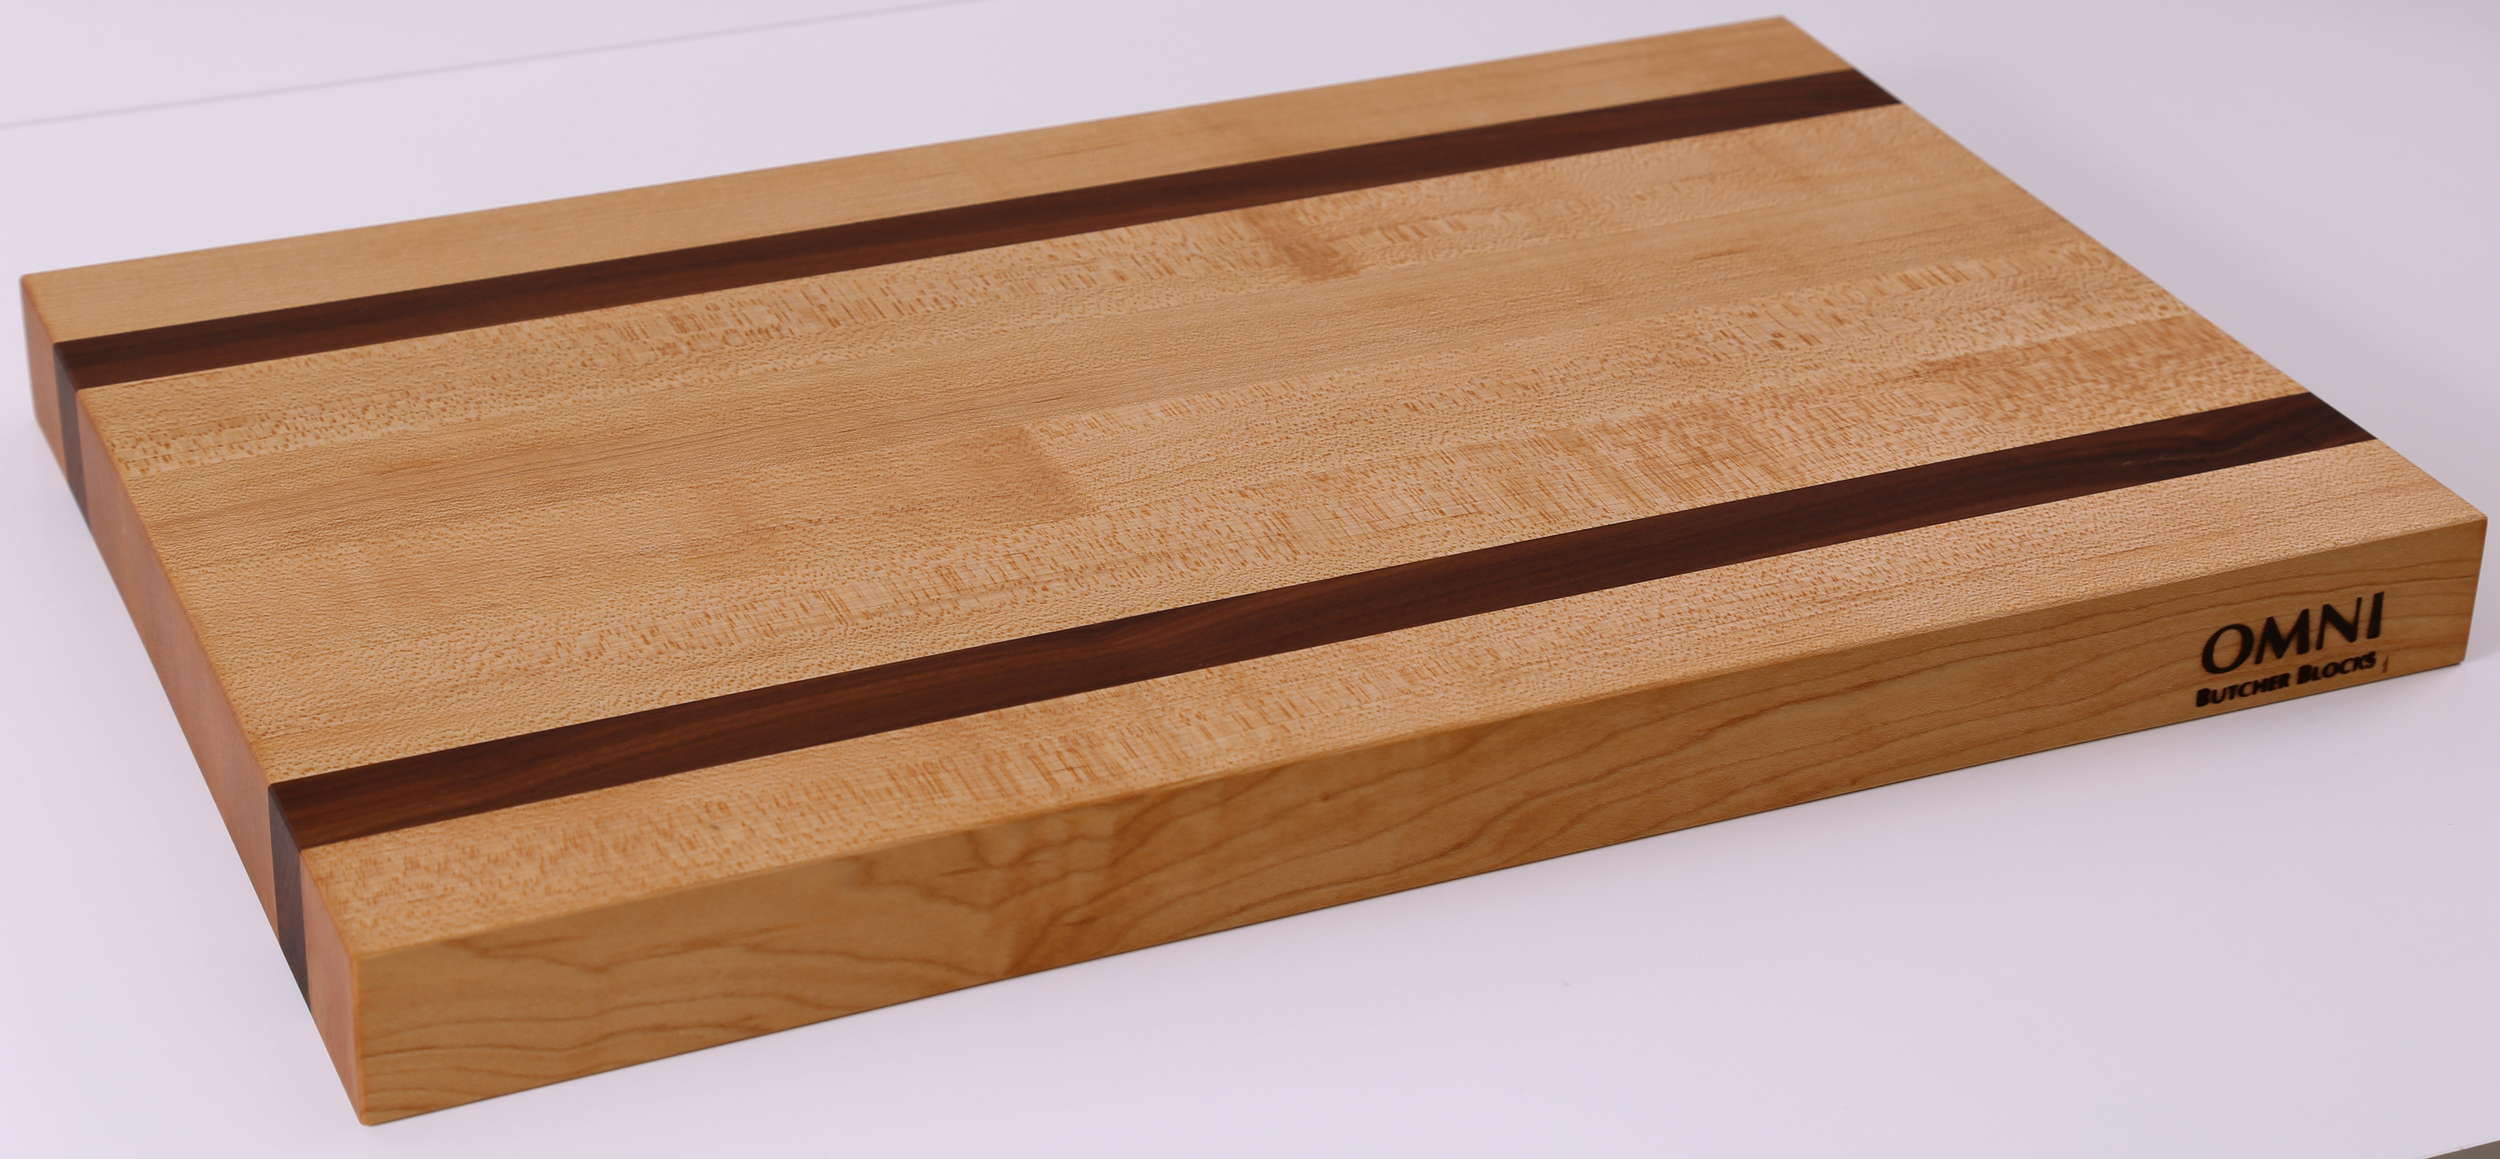 "Our best selling edge grain cutting board is now available in wholesale! This board is perfect for all kitchen sizes and the walnut inlay adds elegance to an everyday kitchen tool.  Approx. measurements are 18"" x 12"" x 1.5"""